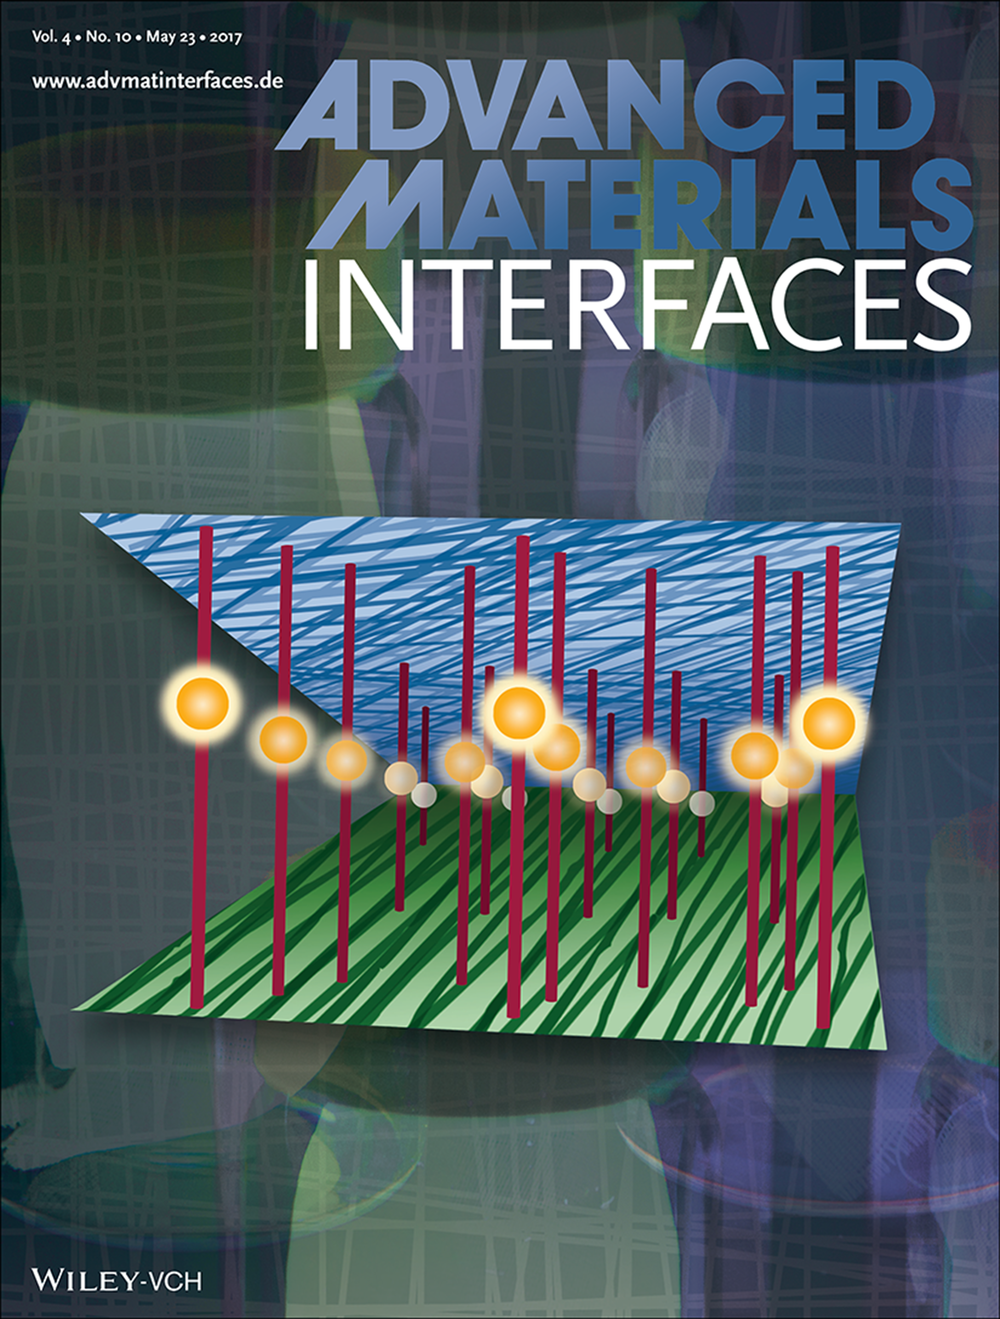 Work featured on cover:  Advanced Materials Interface  s 2017 .